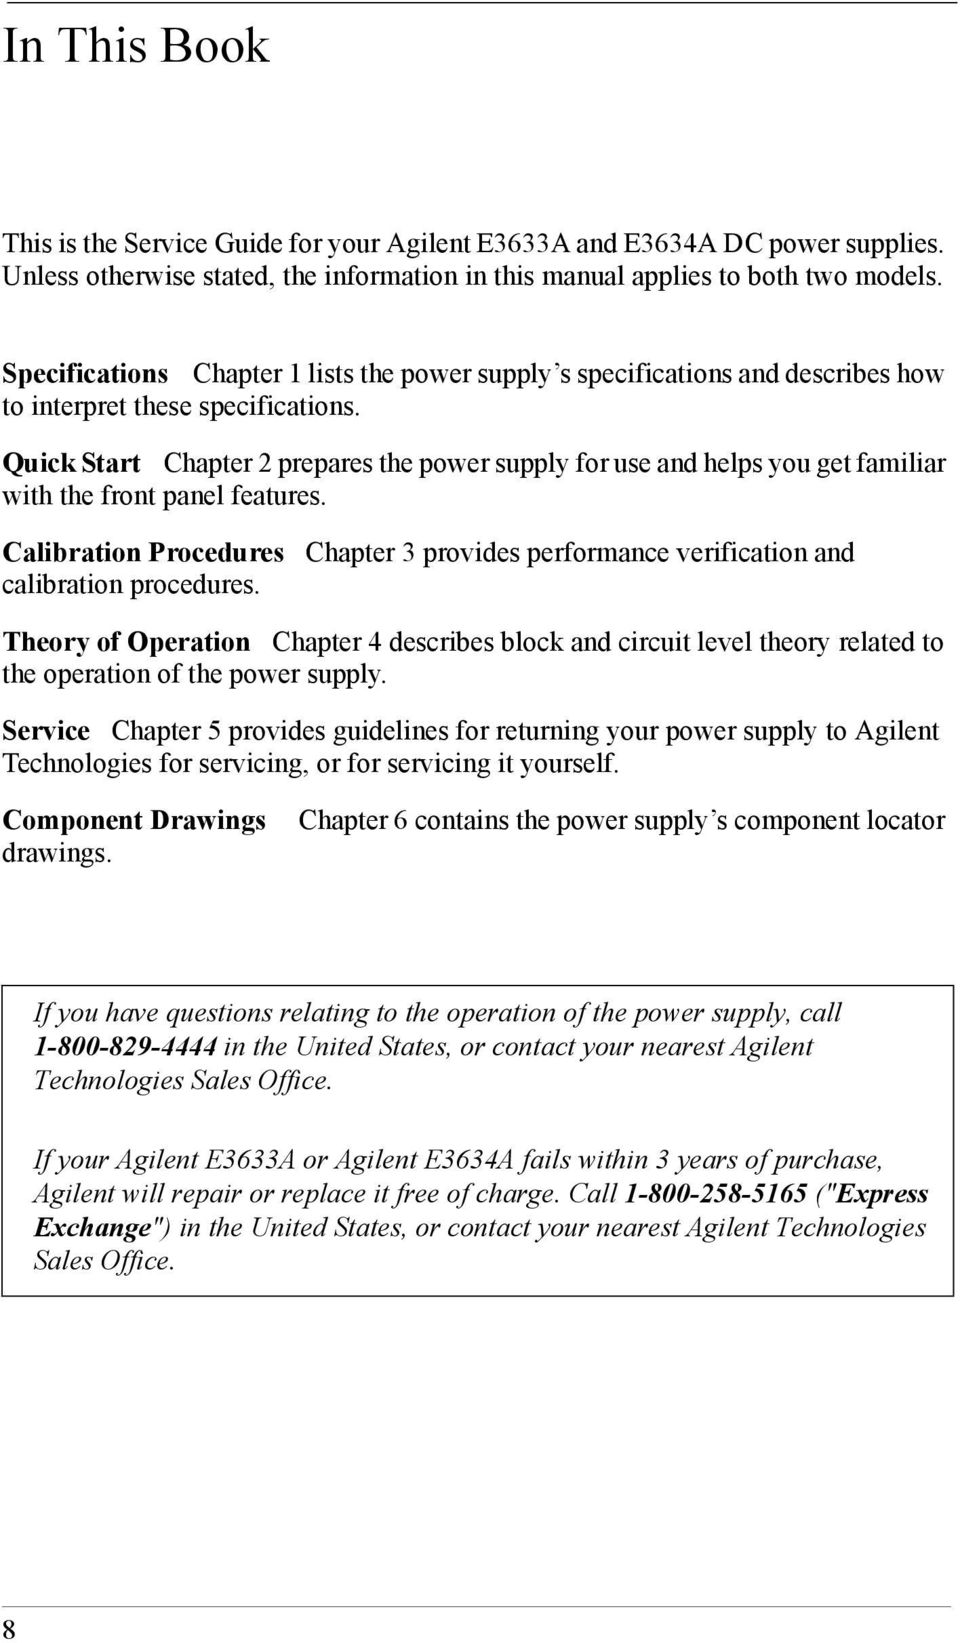 Agilent E3633a And E3634a Dc Power Supplies Pdf Figure 3 Electronic Load Circuit Constant Voltage Cvoperation Quick Start Chapter 2 Prepares The Supply For Use Helps You Get Familiar With